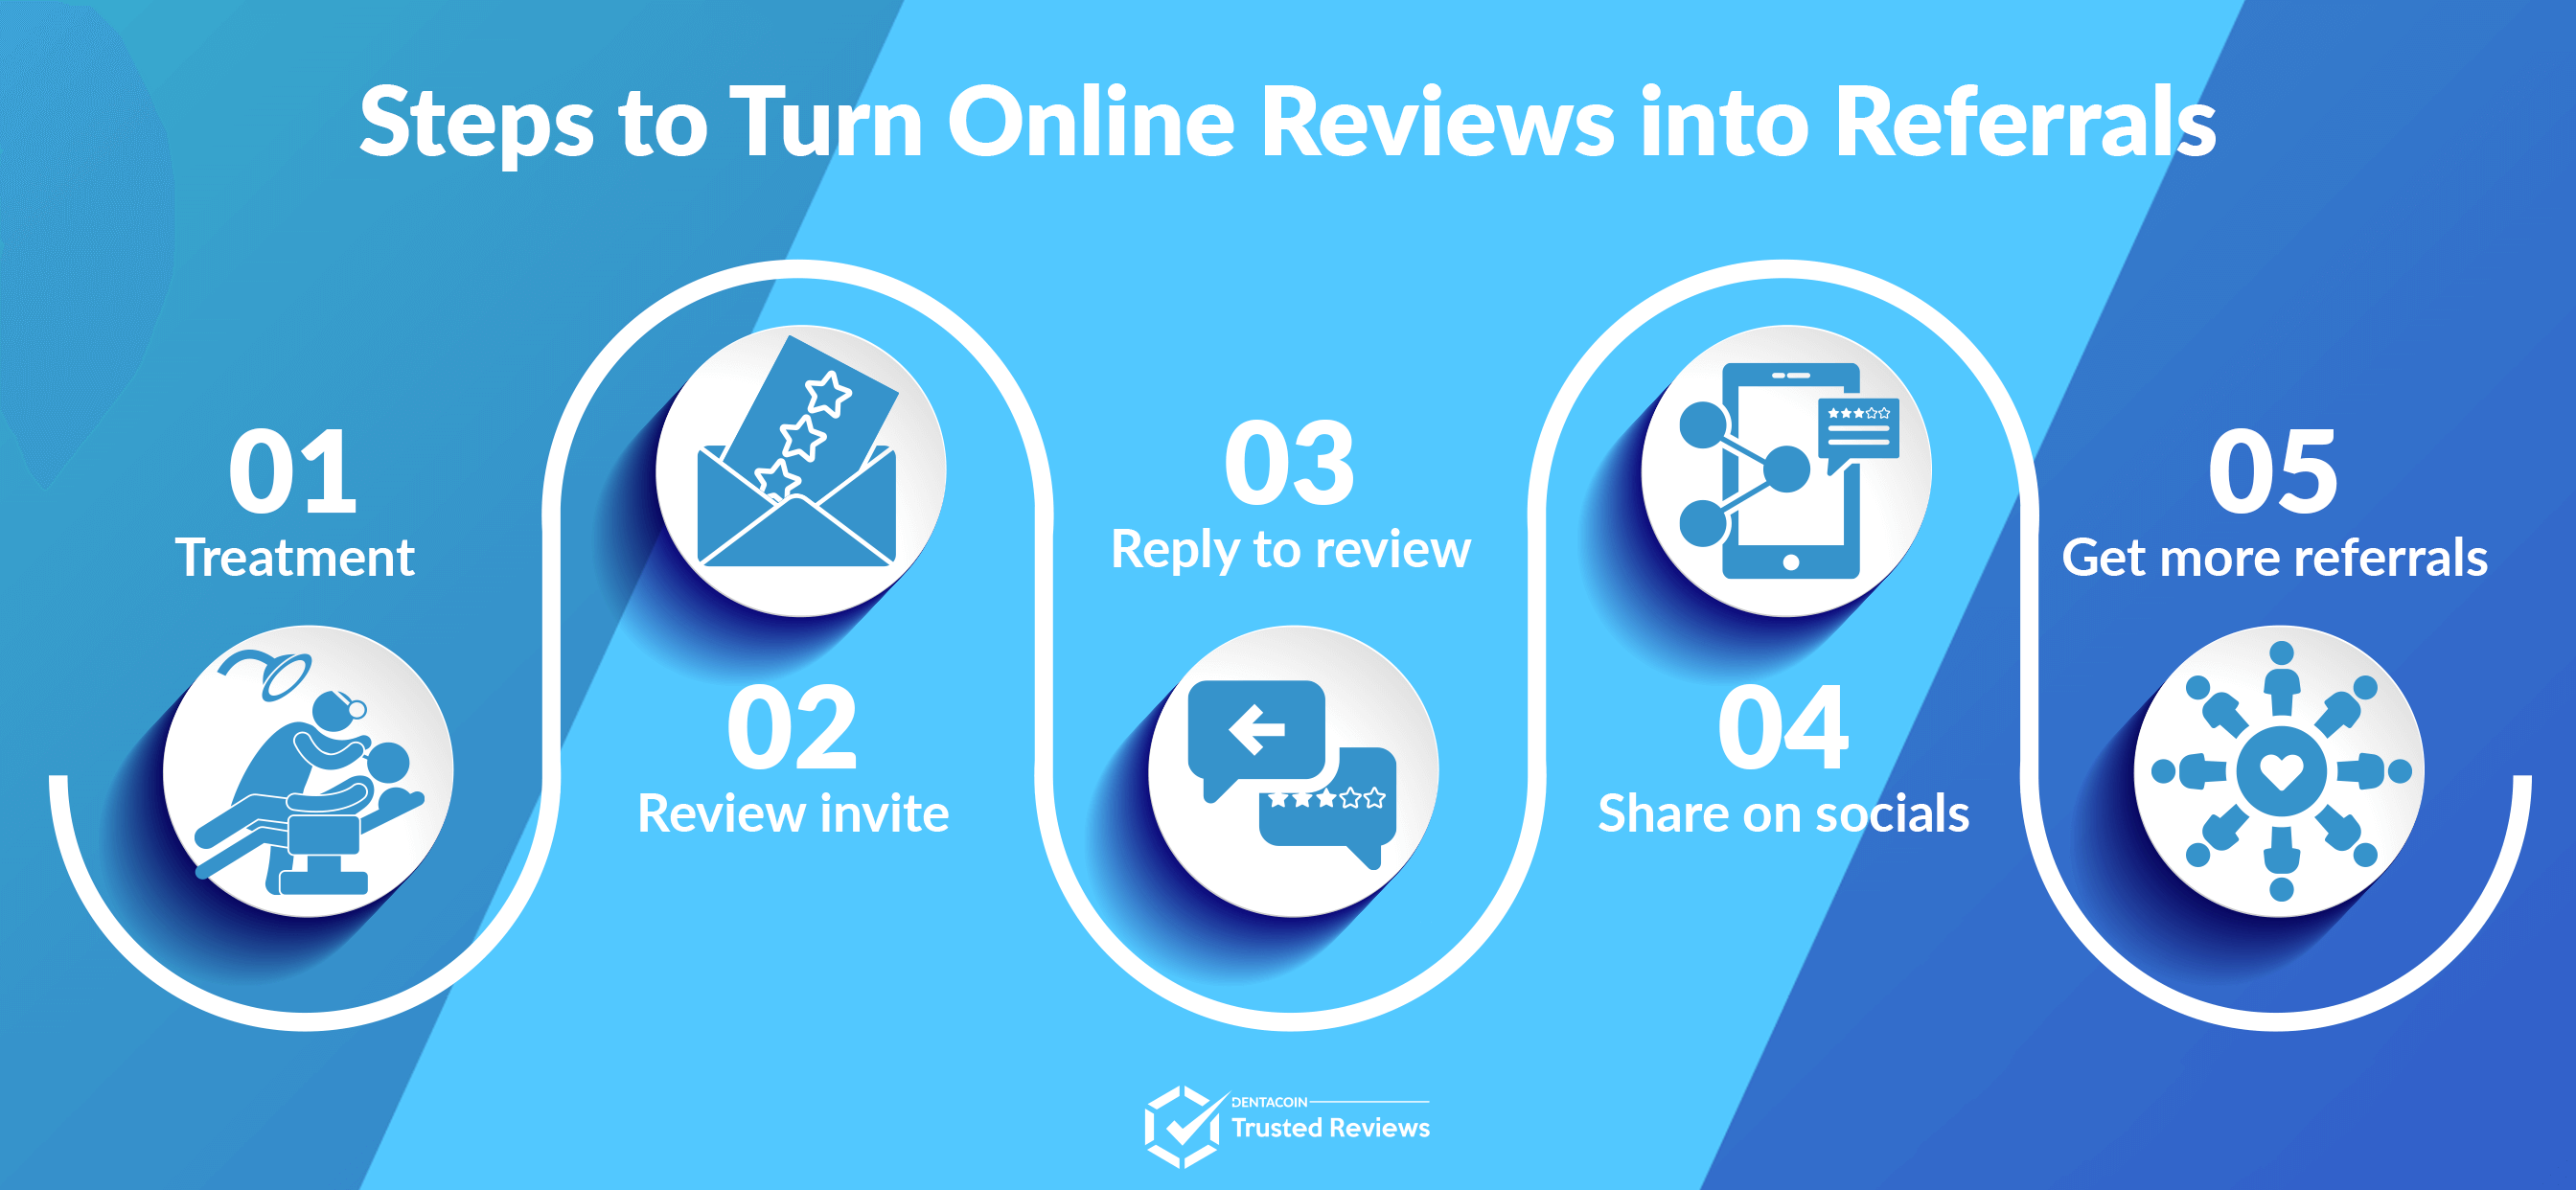 steps from reviews to referrals img